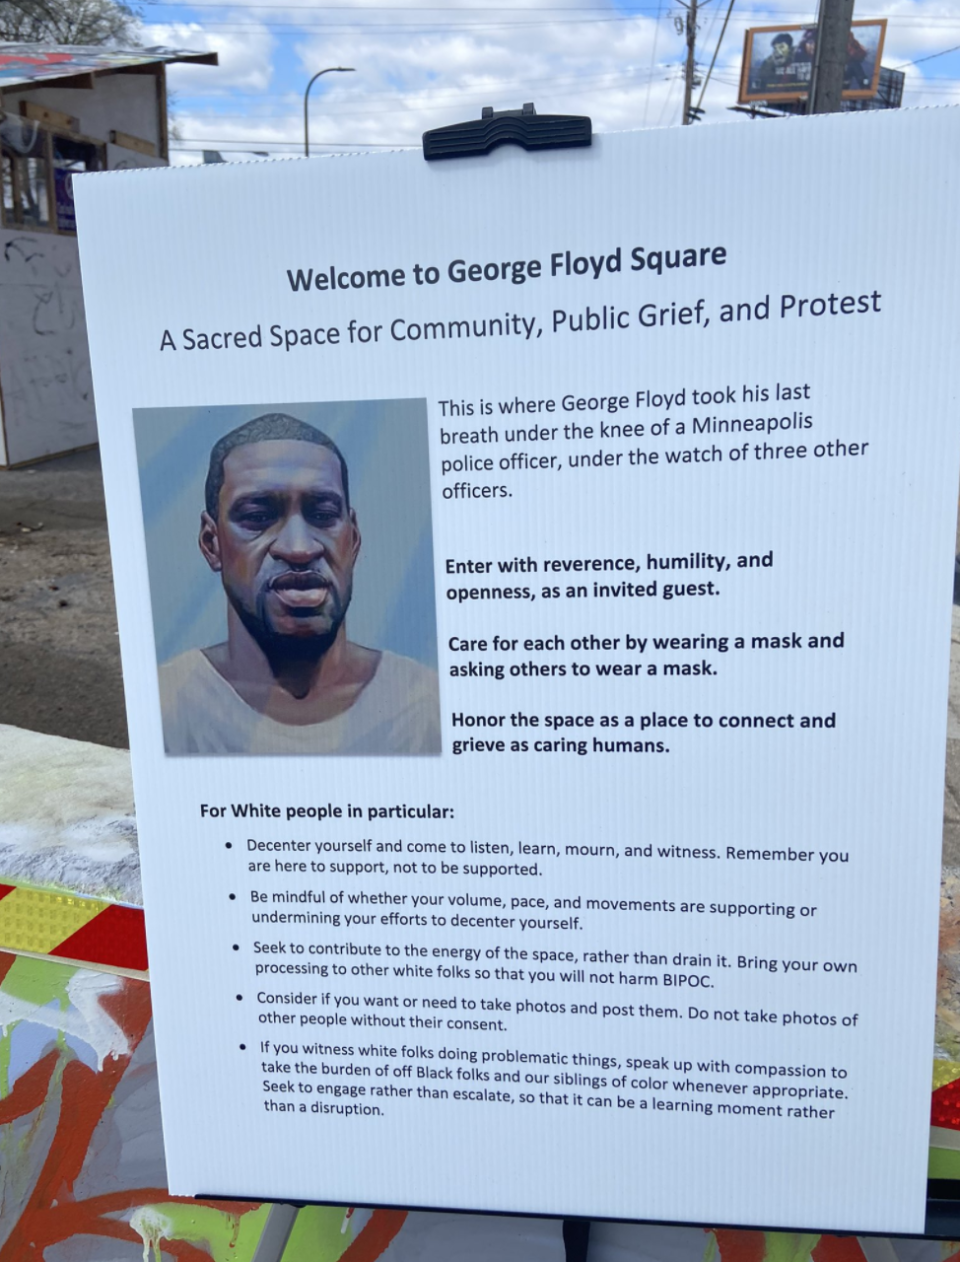 A sign erected at the George Floyd Square with rules for white people.